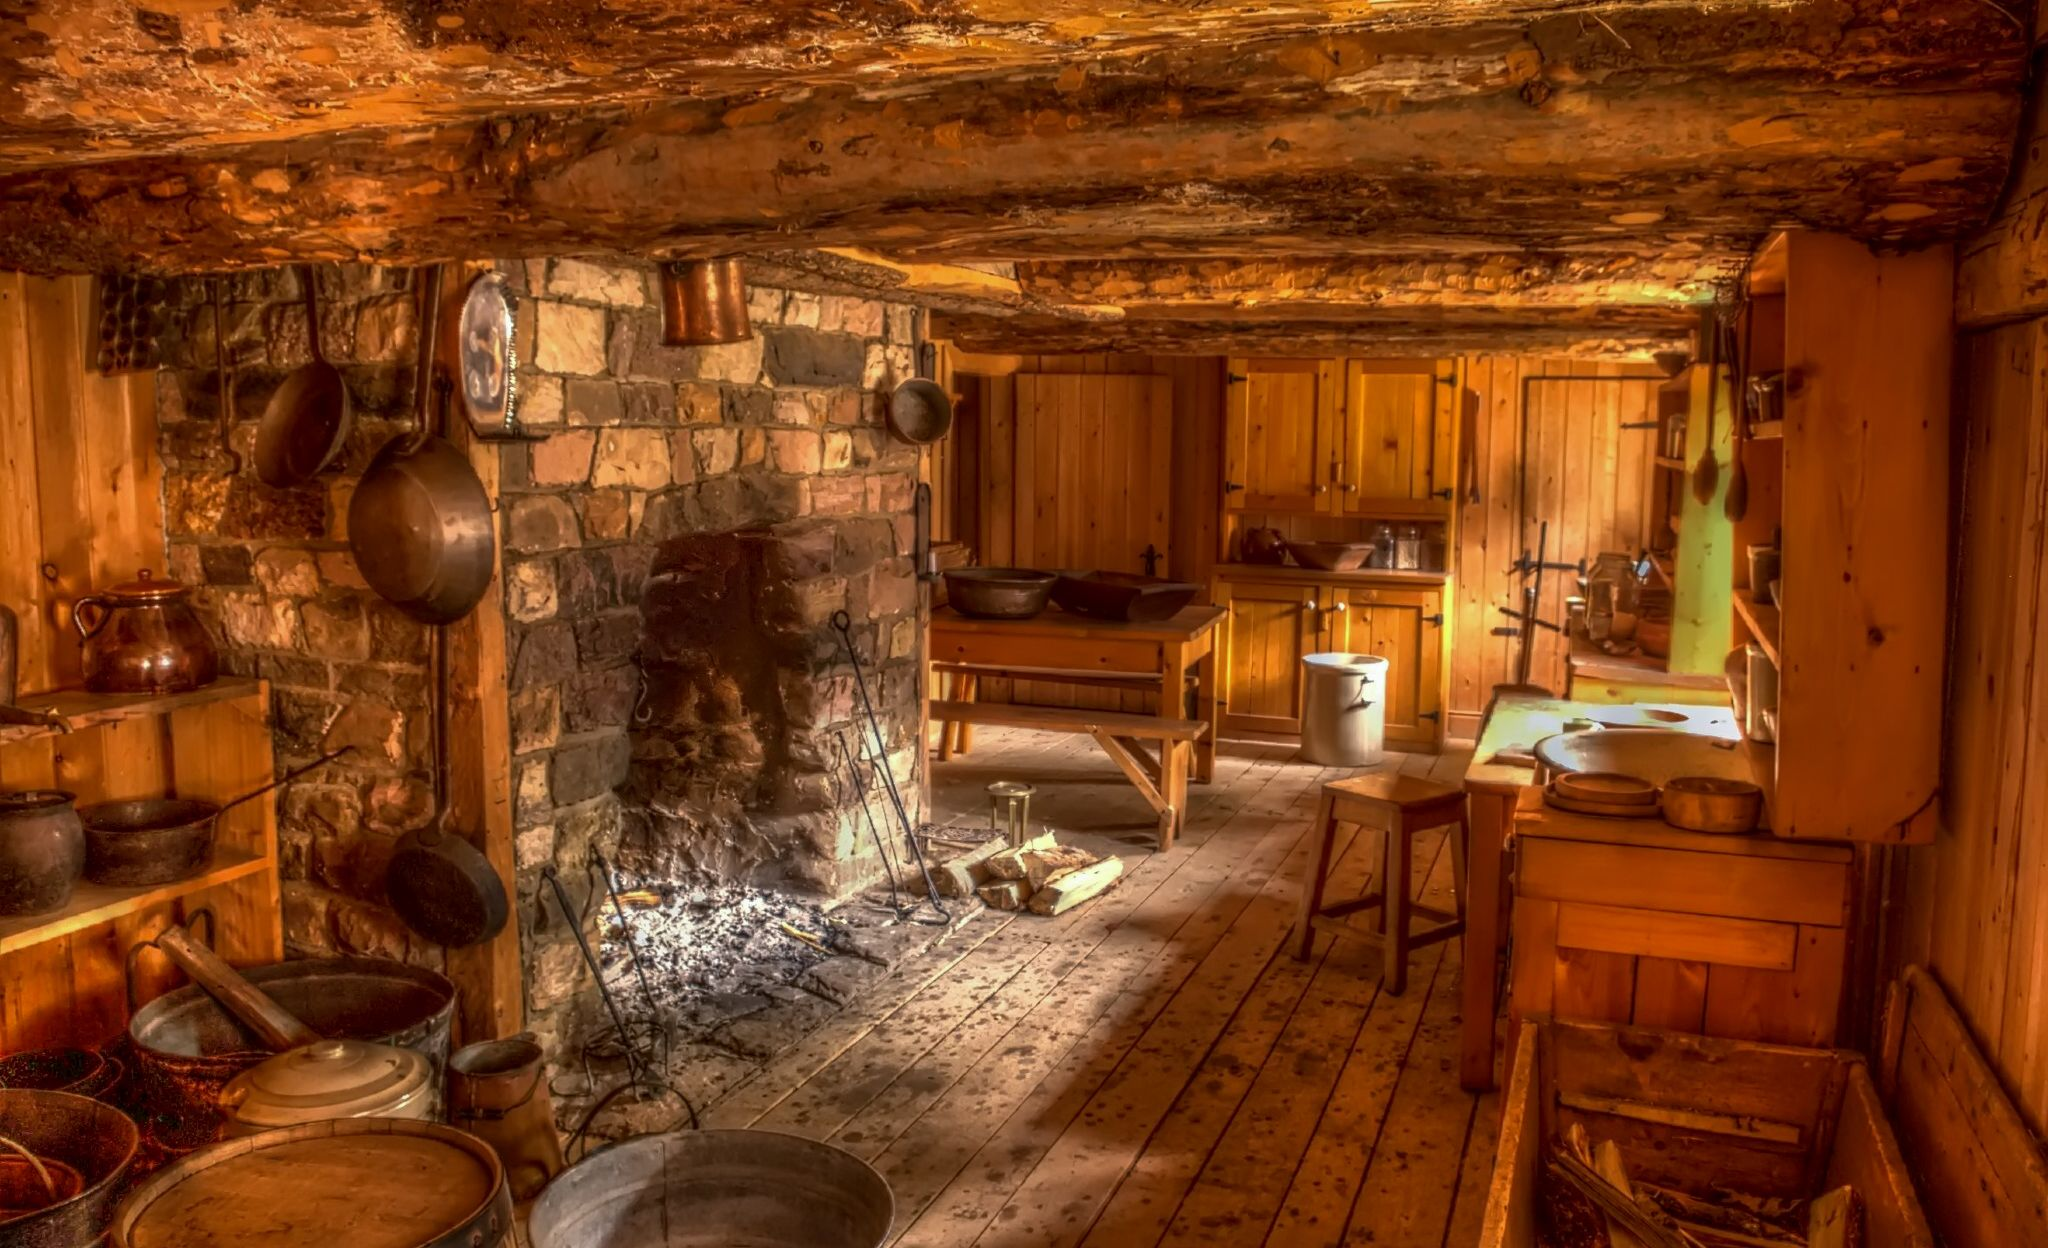 Could it be any OLDER? Now THIS is an open-fireplace in the kitchen ...